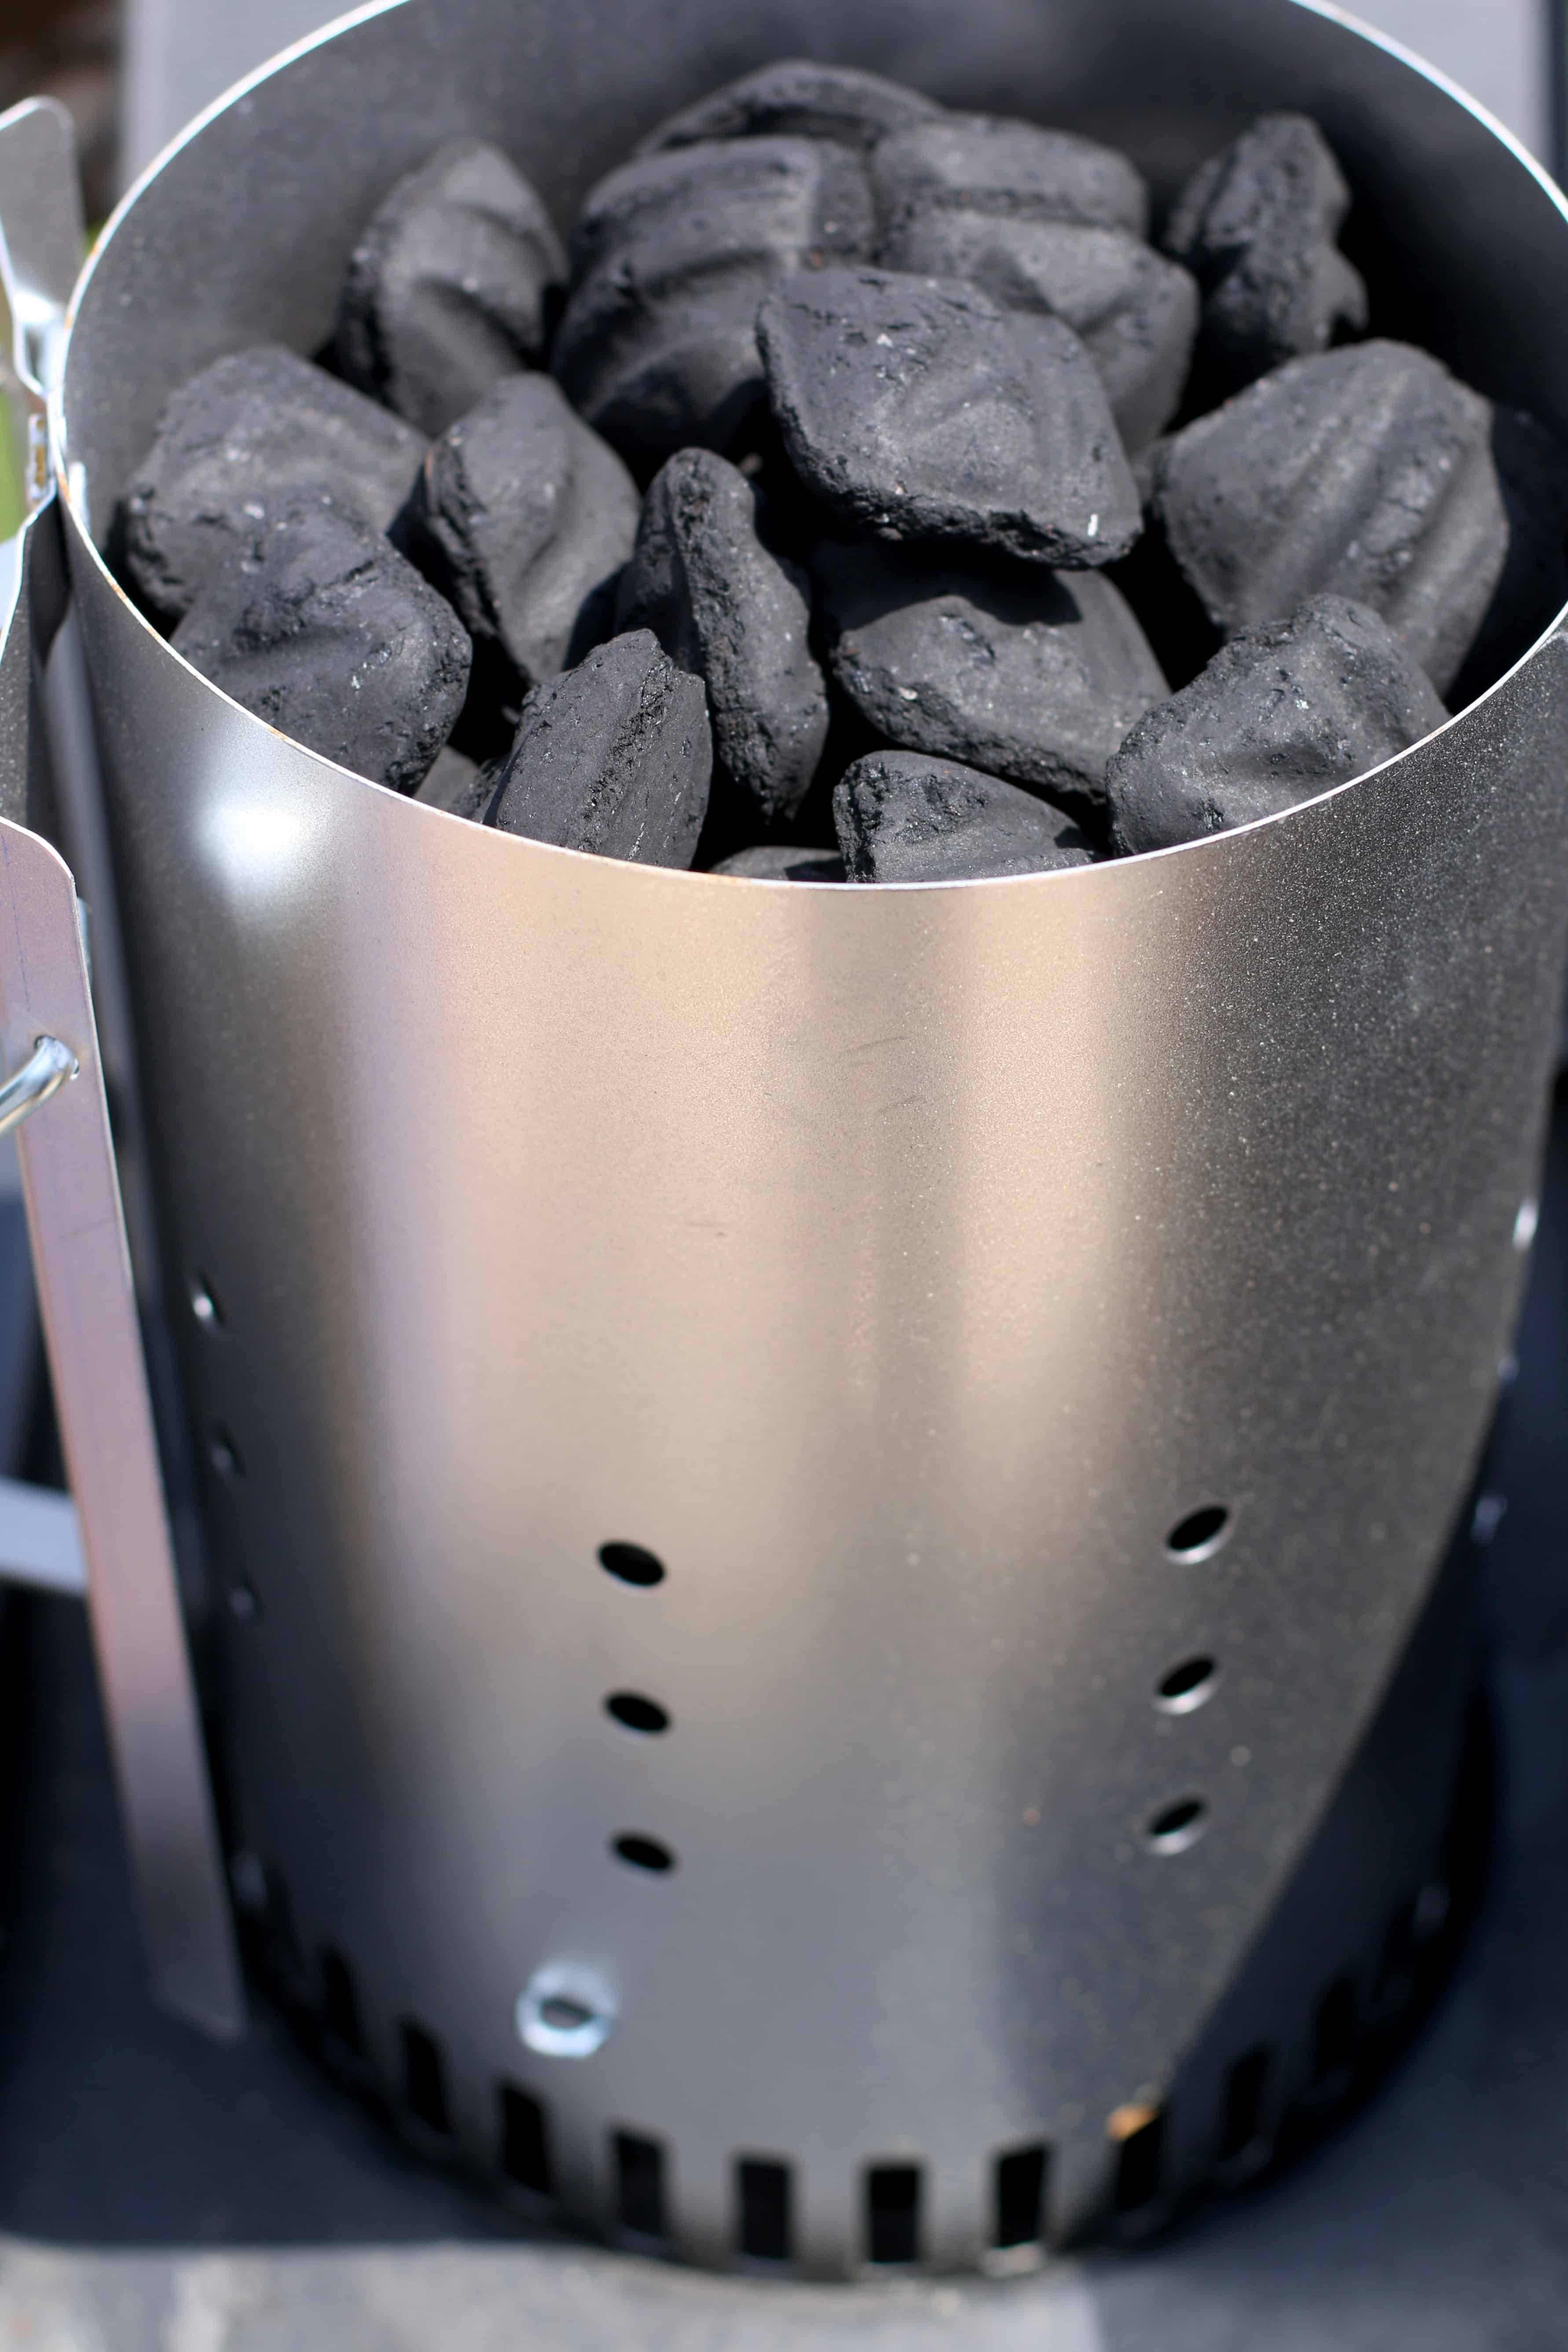 charcoal briquets in a chimney starter